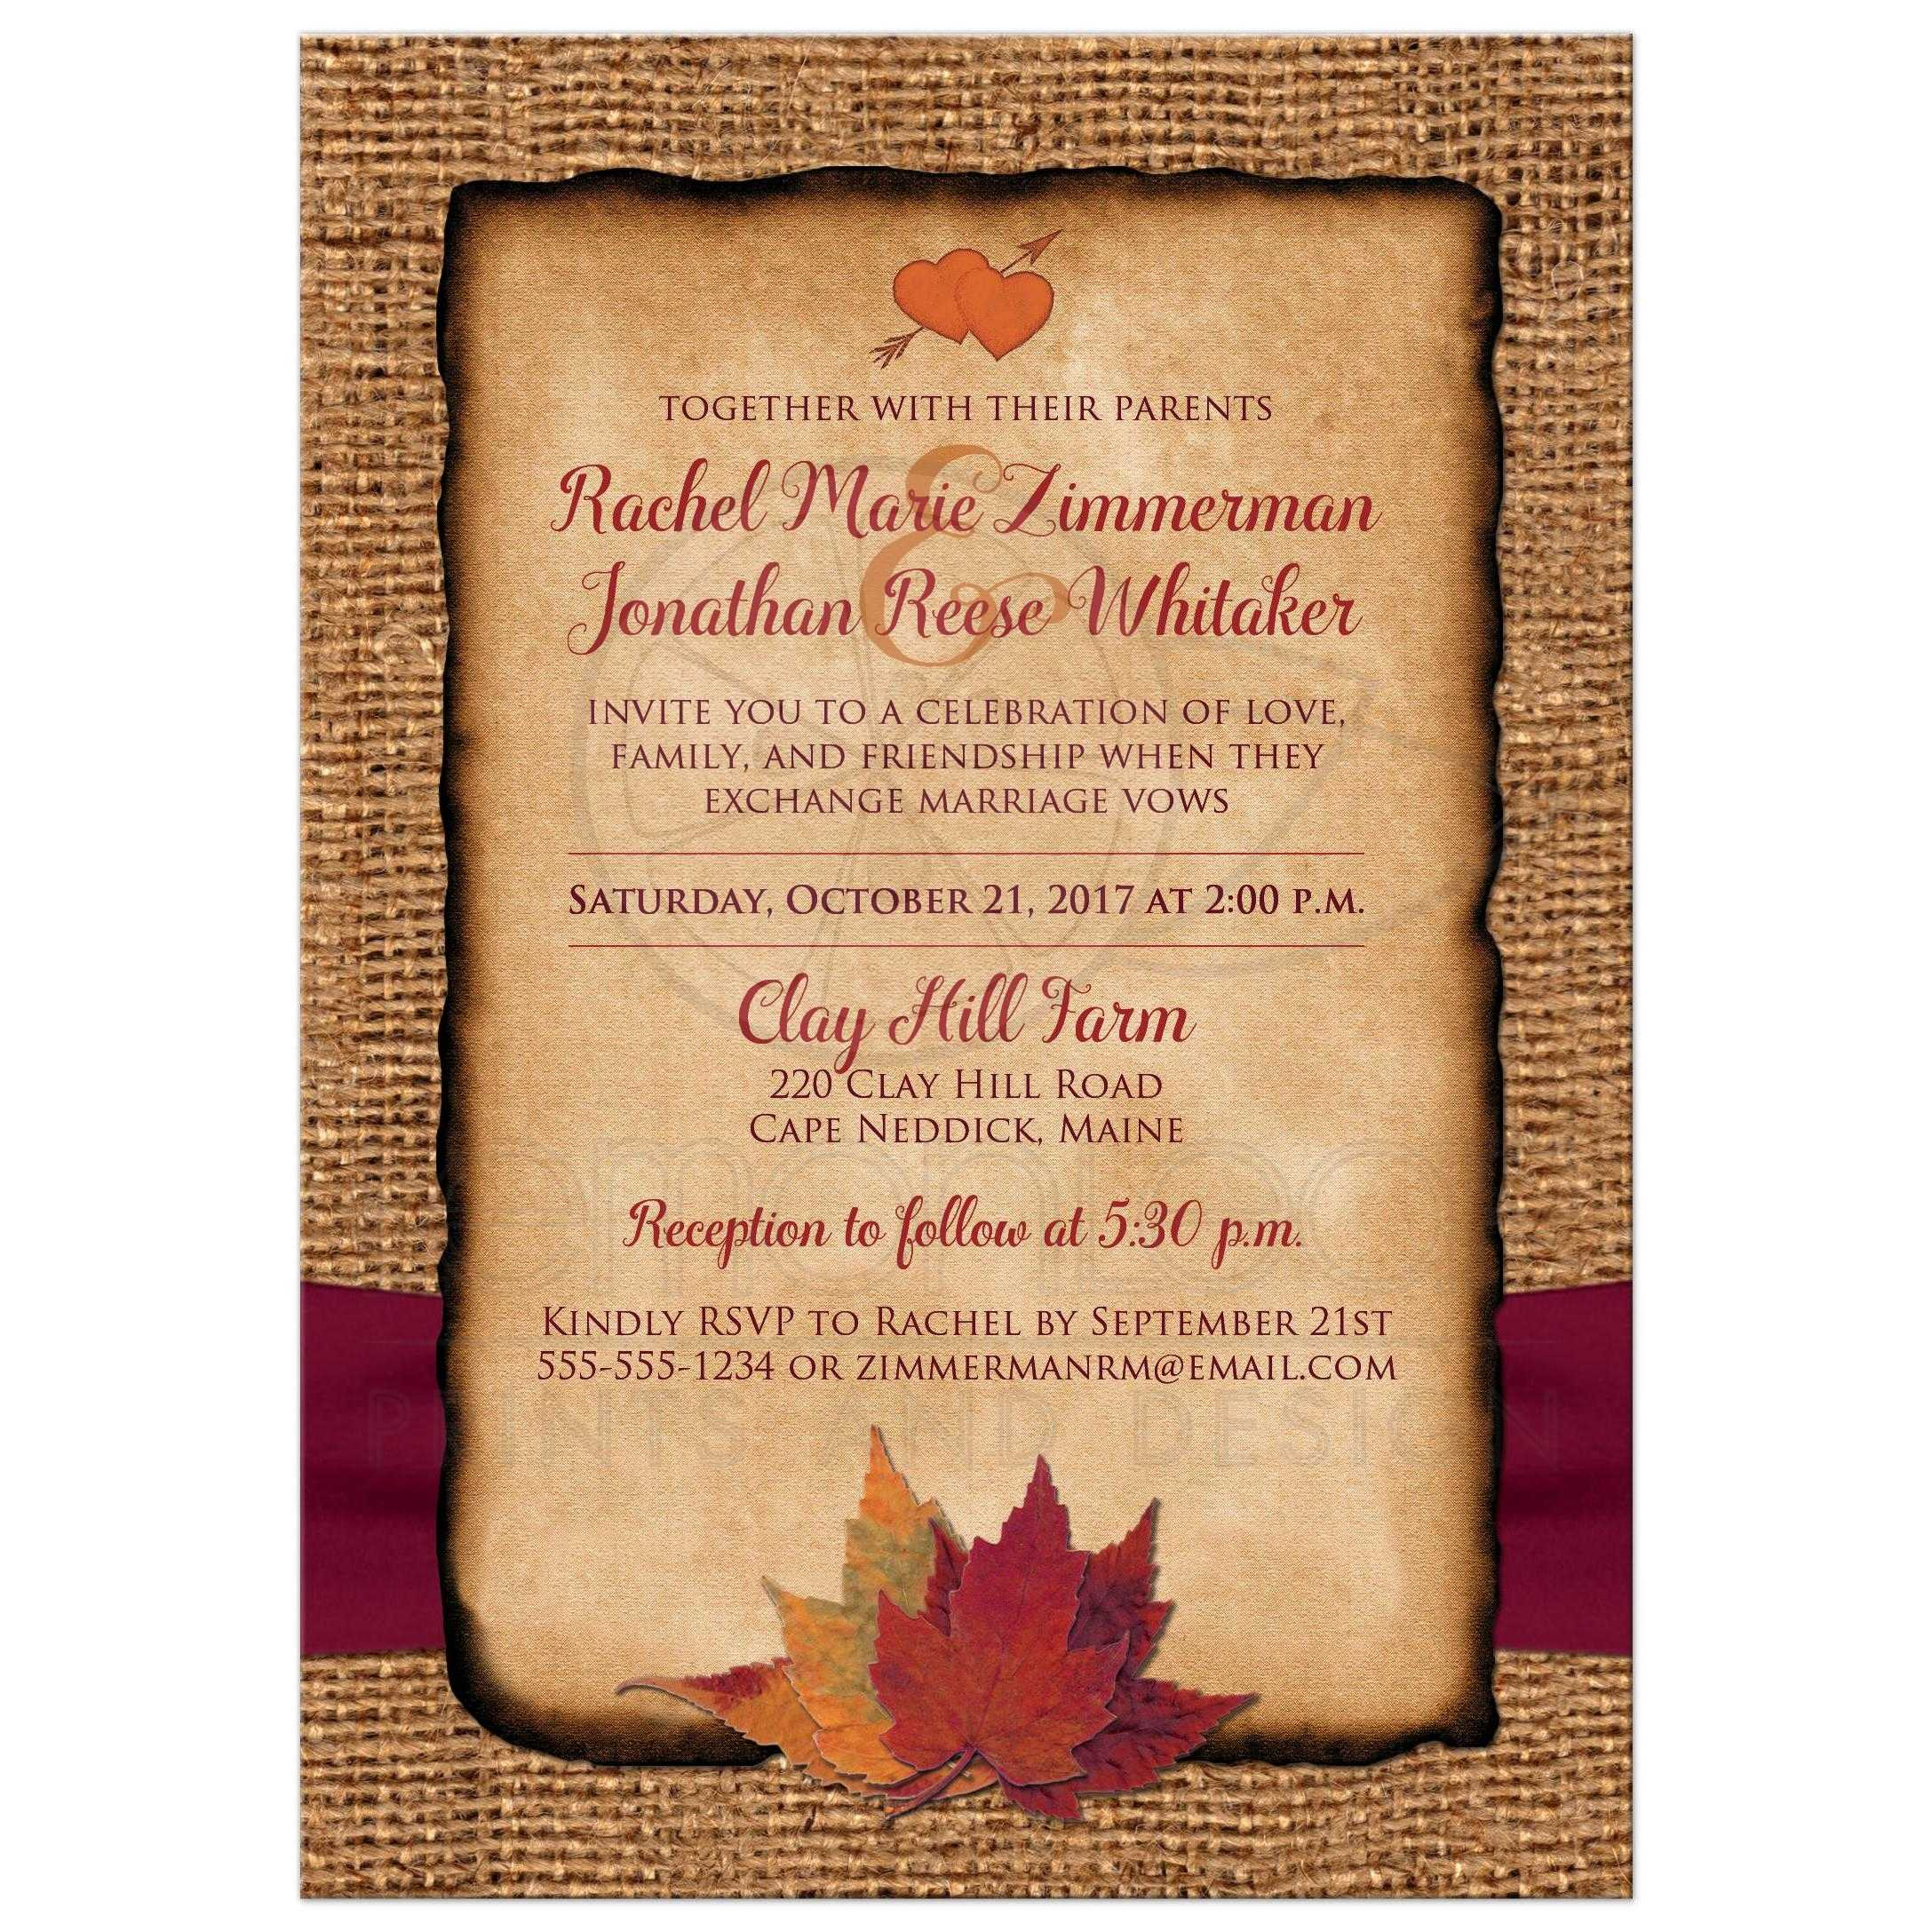 Fall In Love Photo Wedding Invite Faux Burlap Printed Wine Ribbon Autumn Leaves